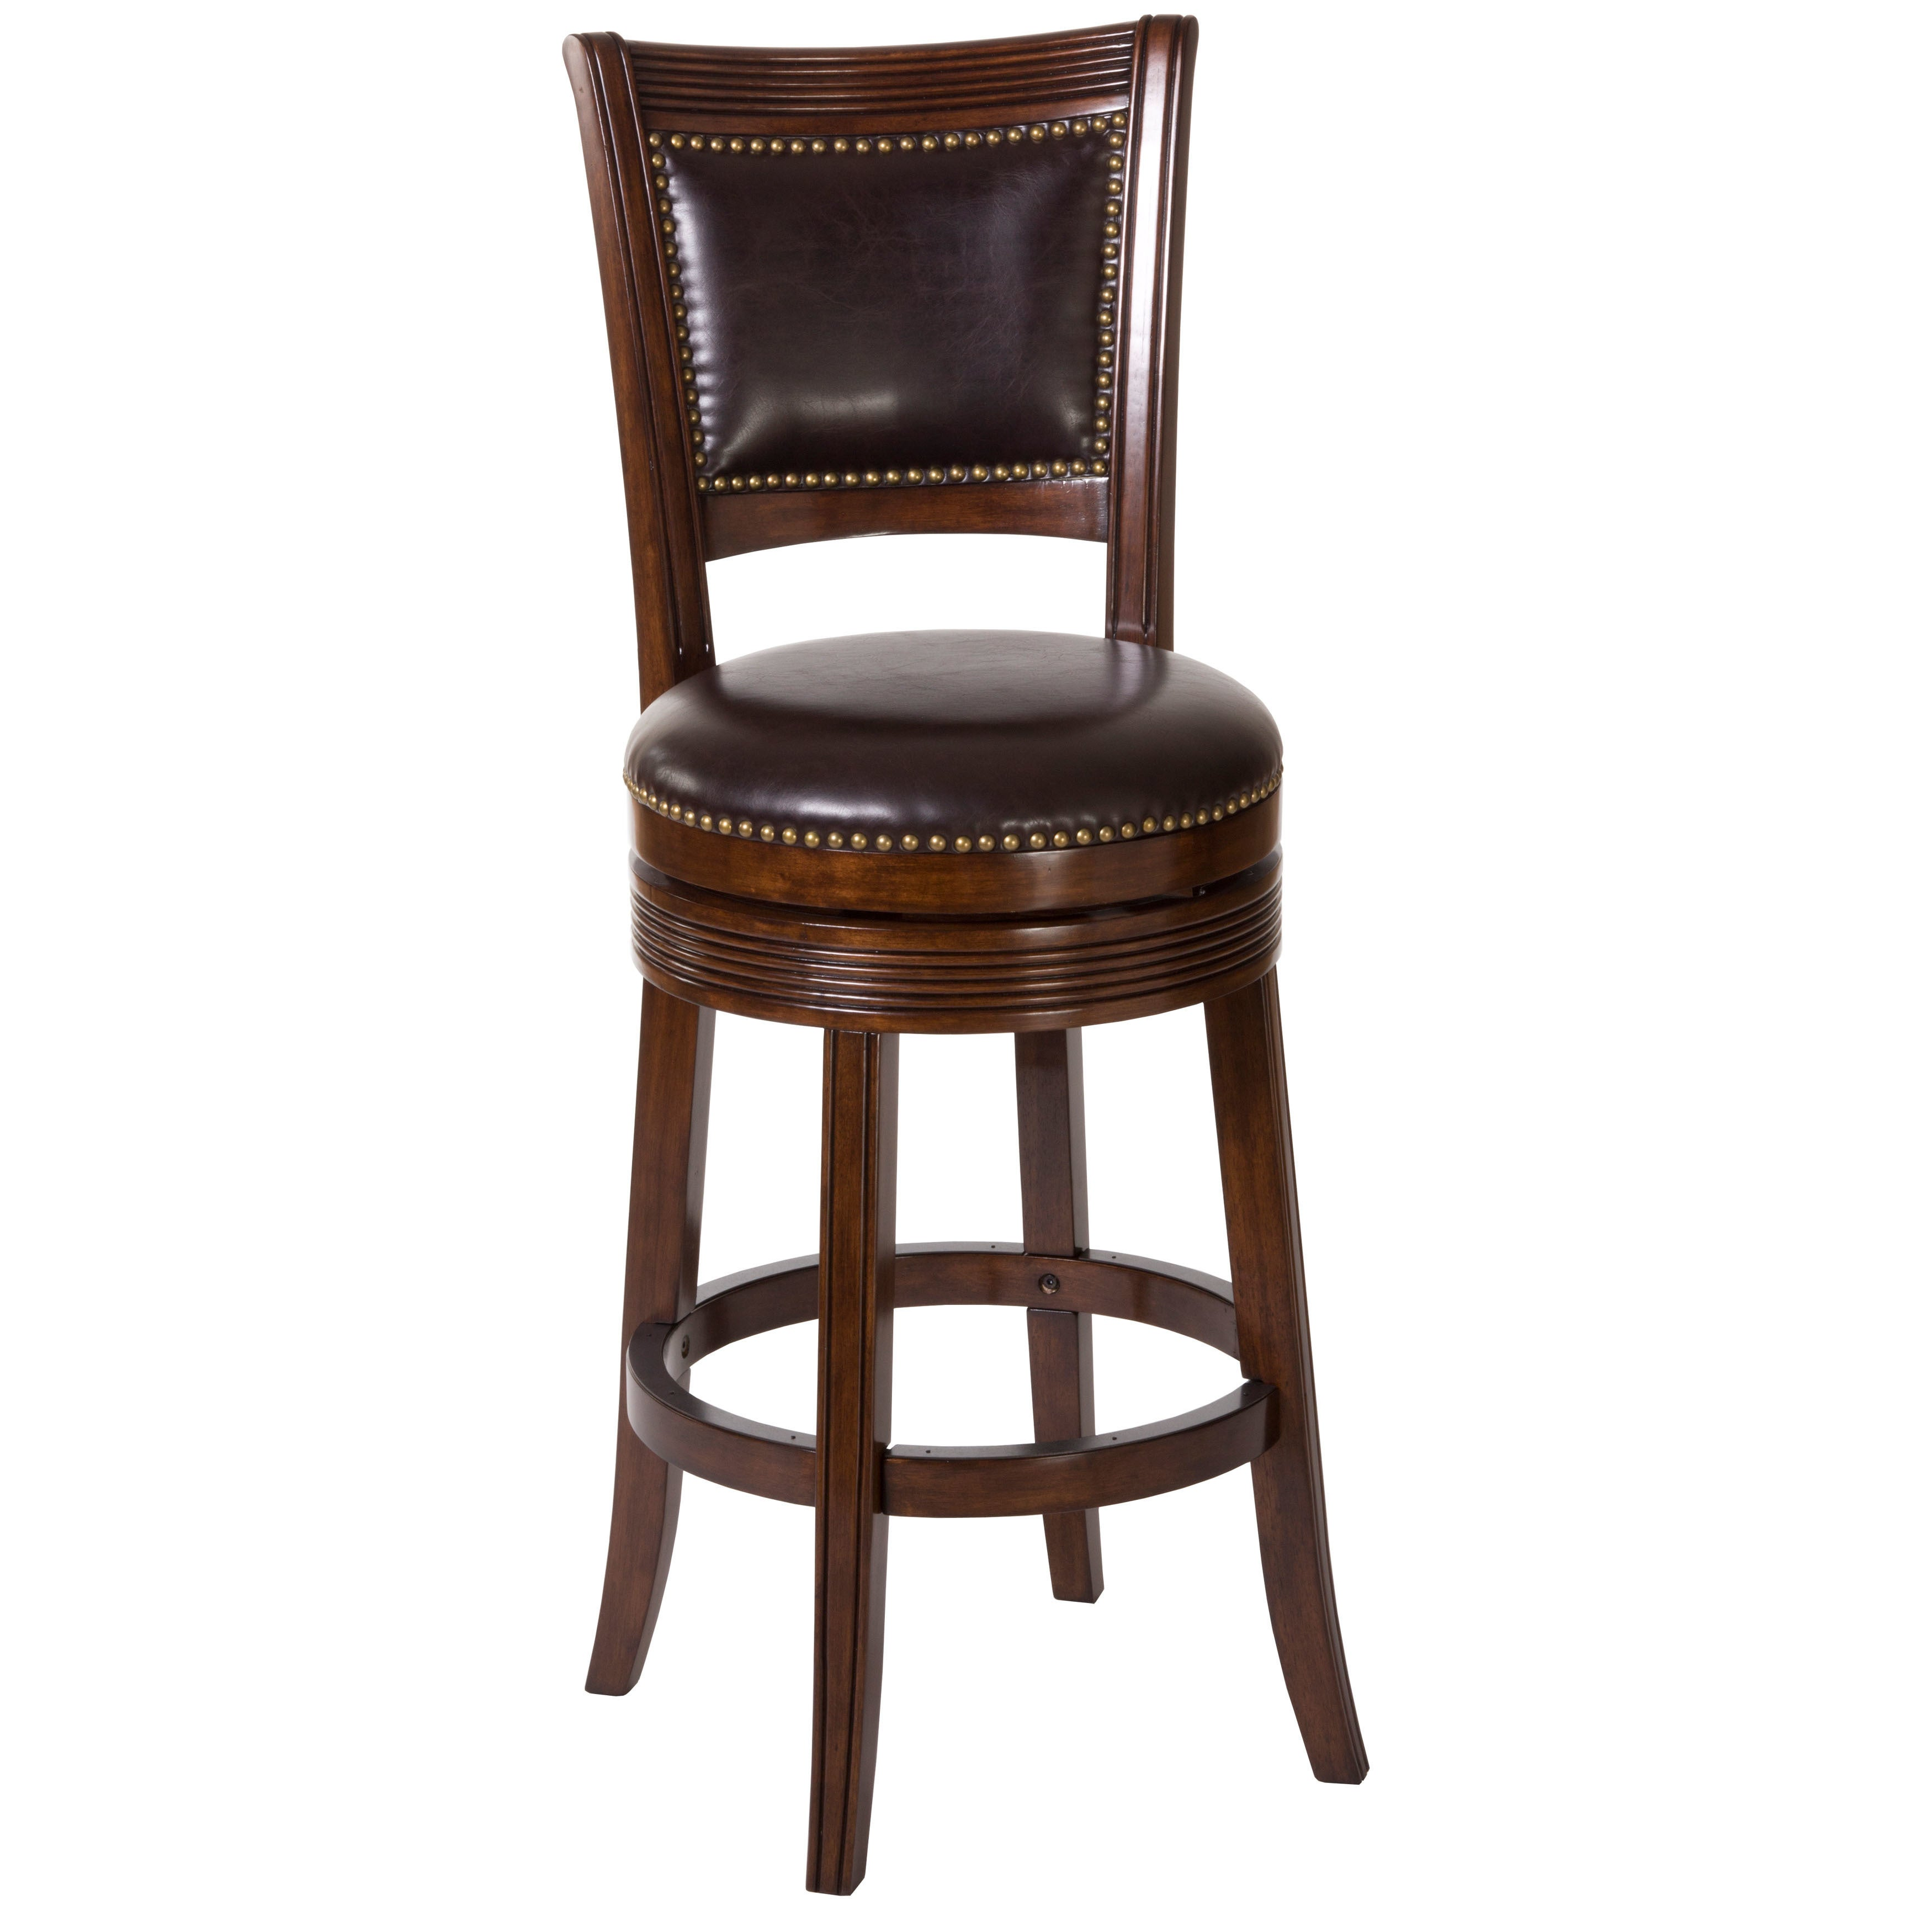 Super Hillsdale Furniture Lockefield Brown Cherry Wood Swivel Counter Stool Inzonedesignstudio Interior Chair Design Inzonedesignstudiocom